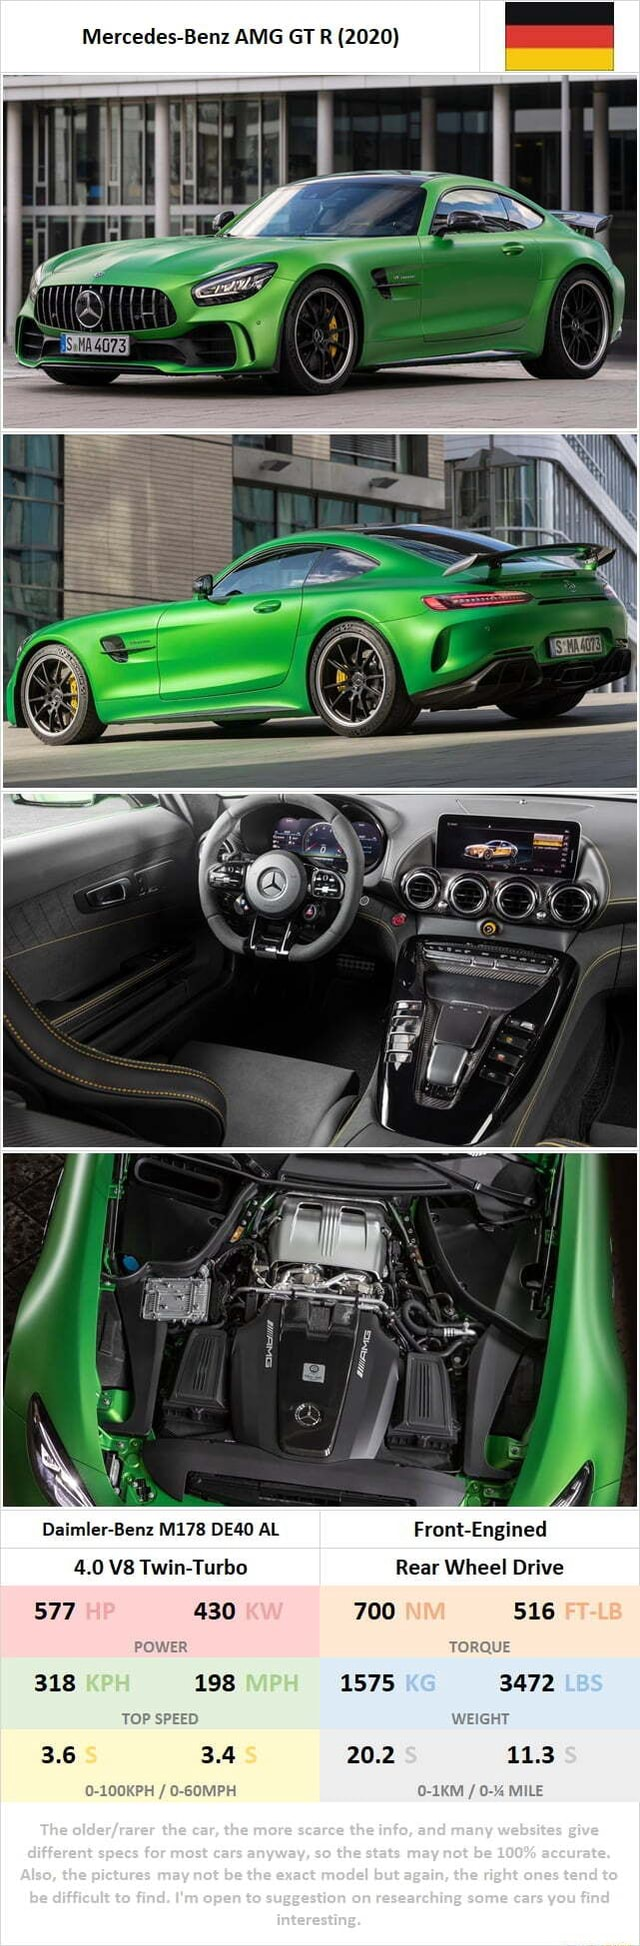 Mercedes Benz AMG GT R 2020 Fromt ngined 4.0 Twin Turbo Rear Wheel Drive TORQUE 198 TOP ene, tho ganes Albe, tho tho cone memes